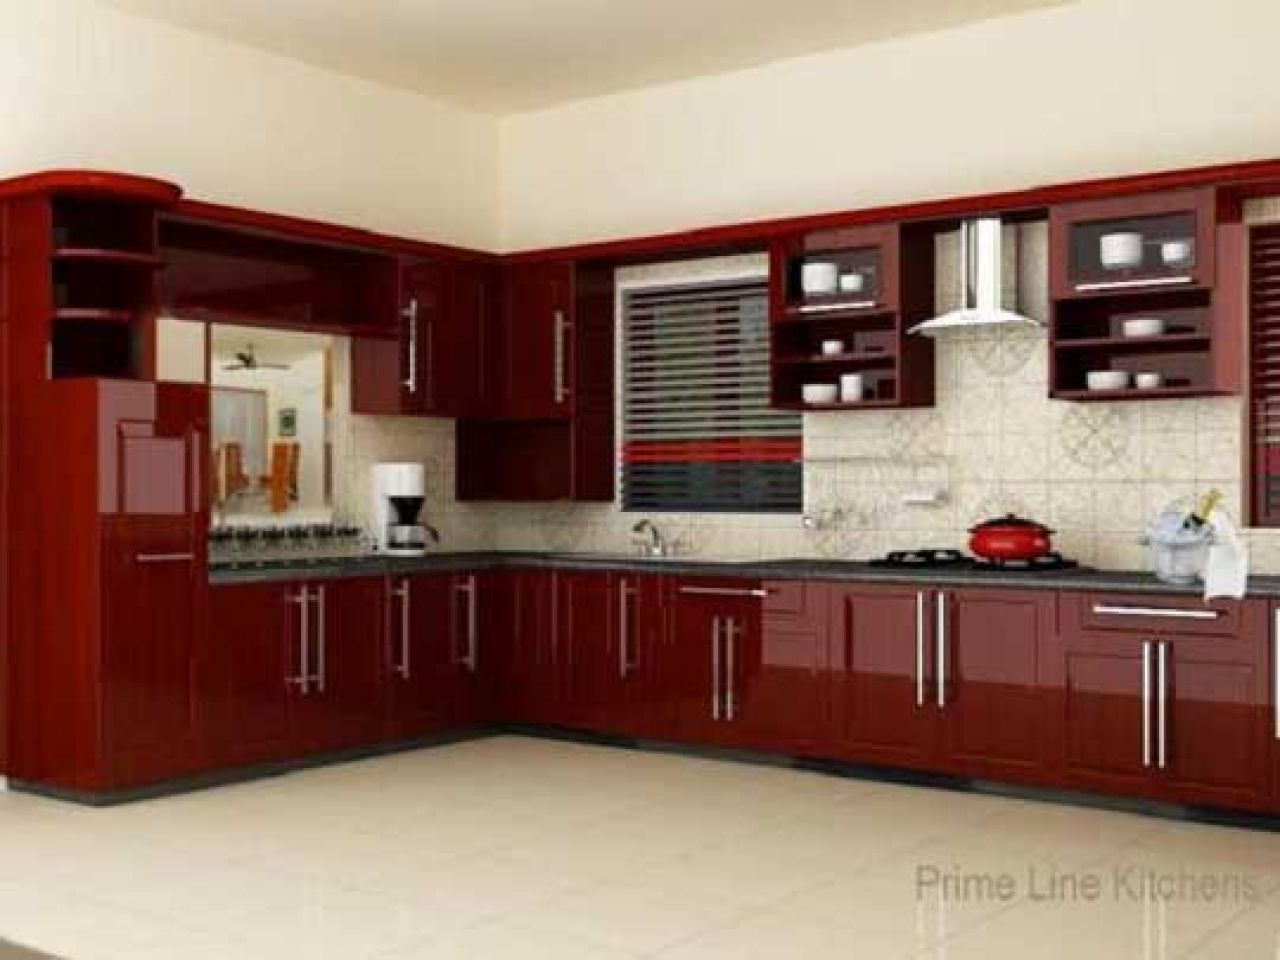 Merveilleux New Model Kitchen Design Kerala Conexaowebmix.com